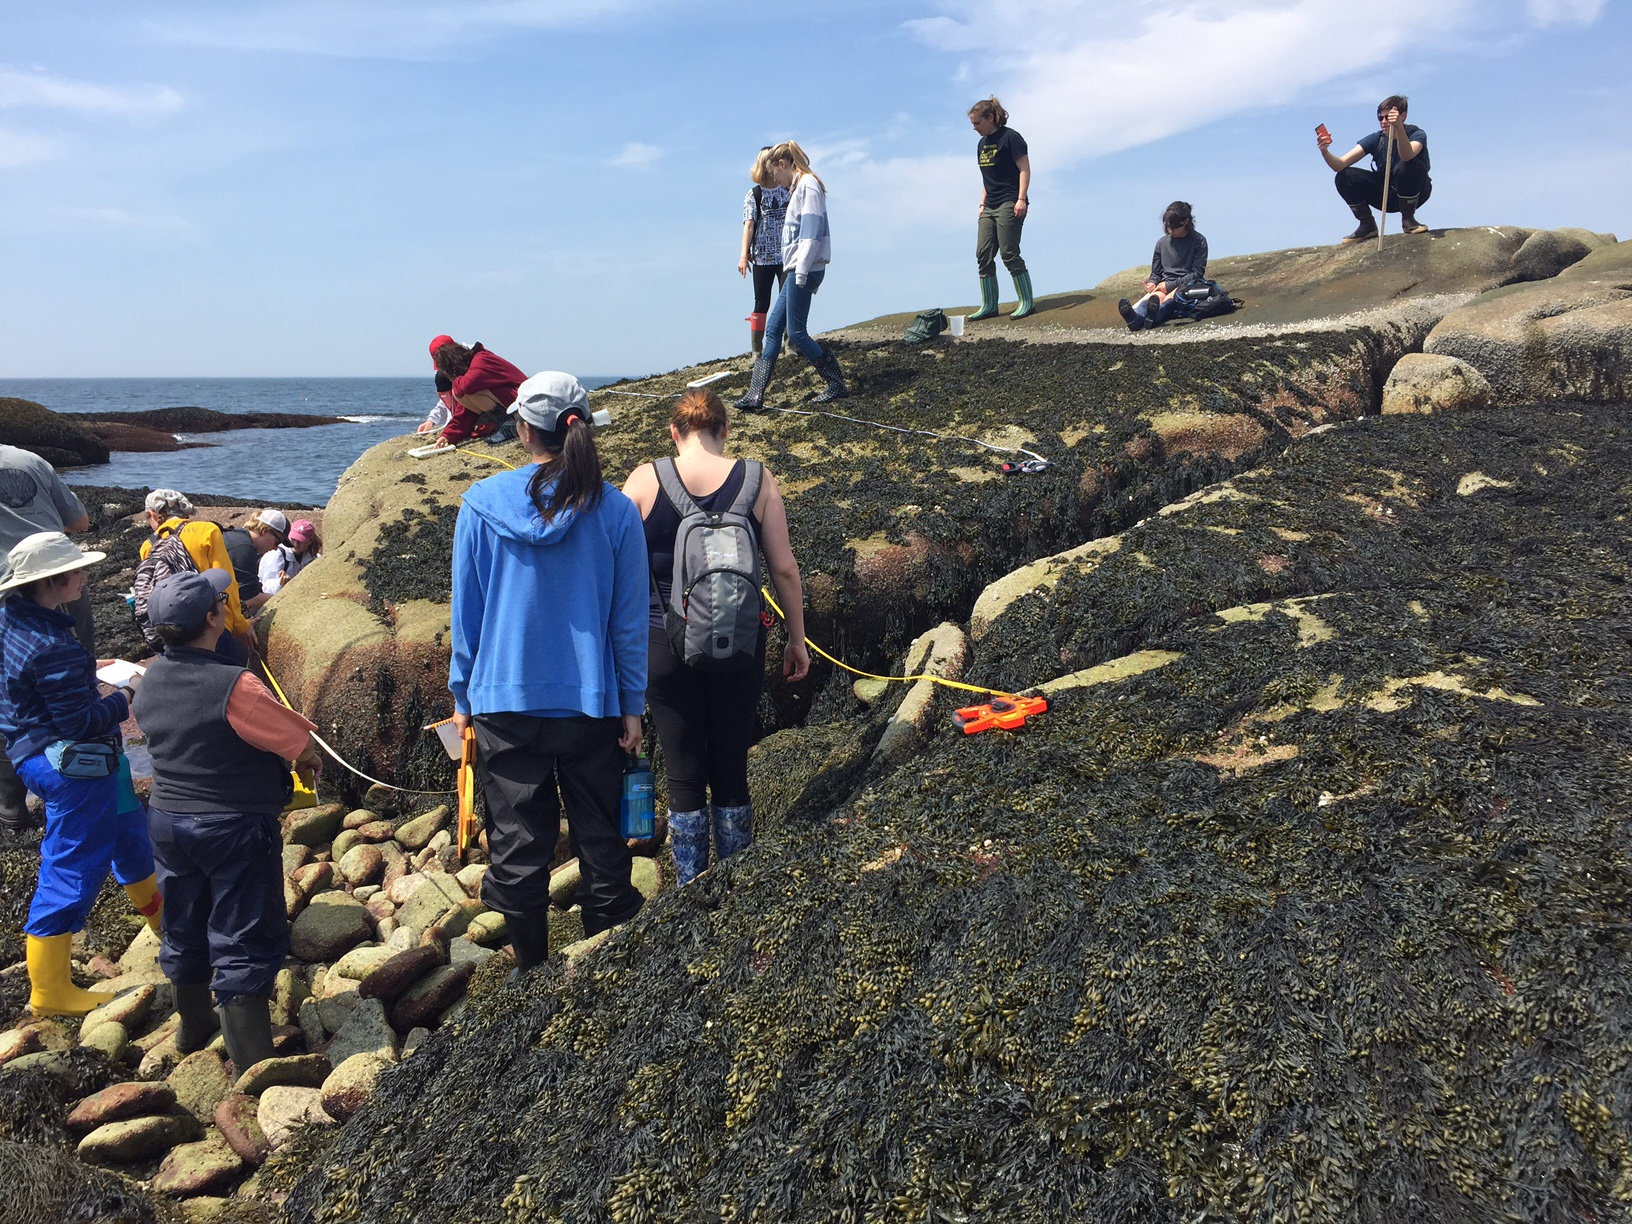 CSW students practice using transect tapes and quadrats in the intertidal zone. Photo courtesy of Scott Byrd.